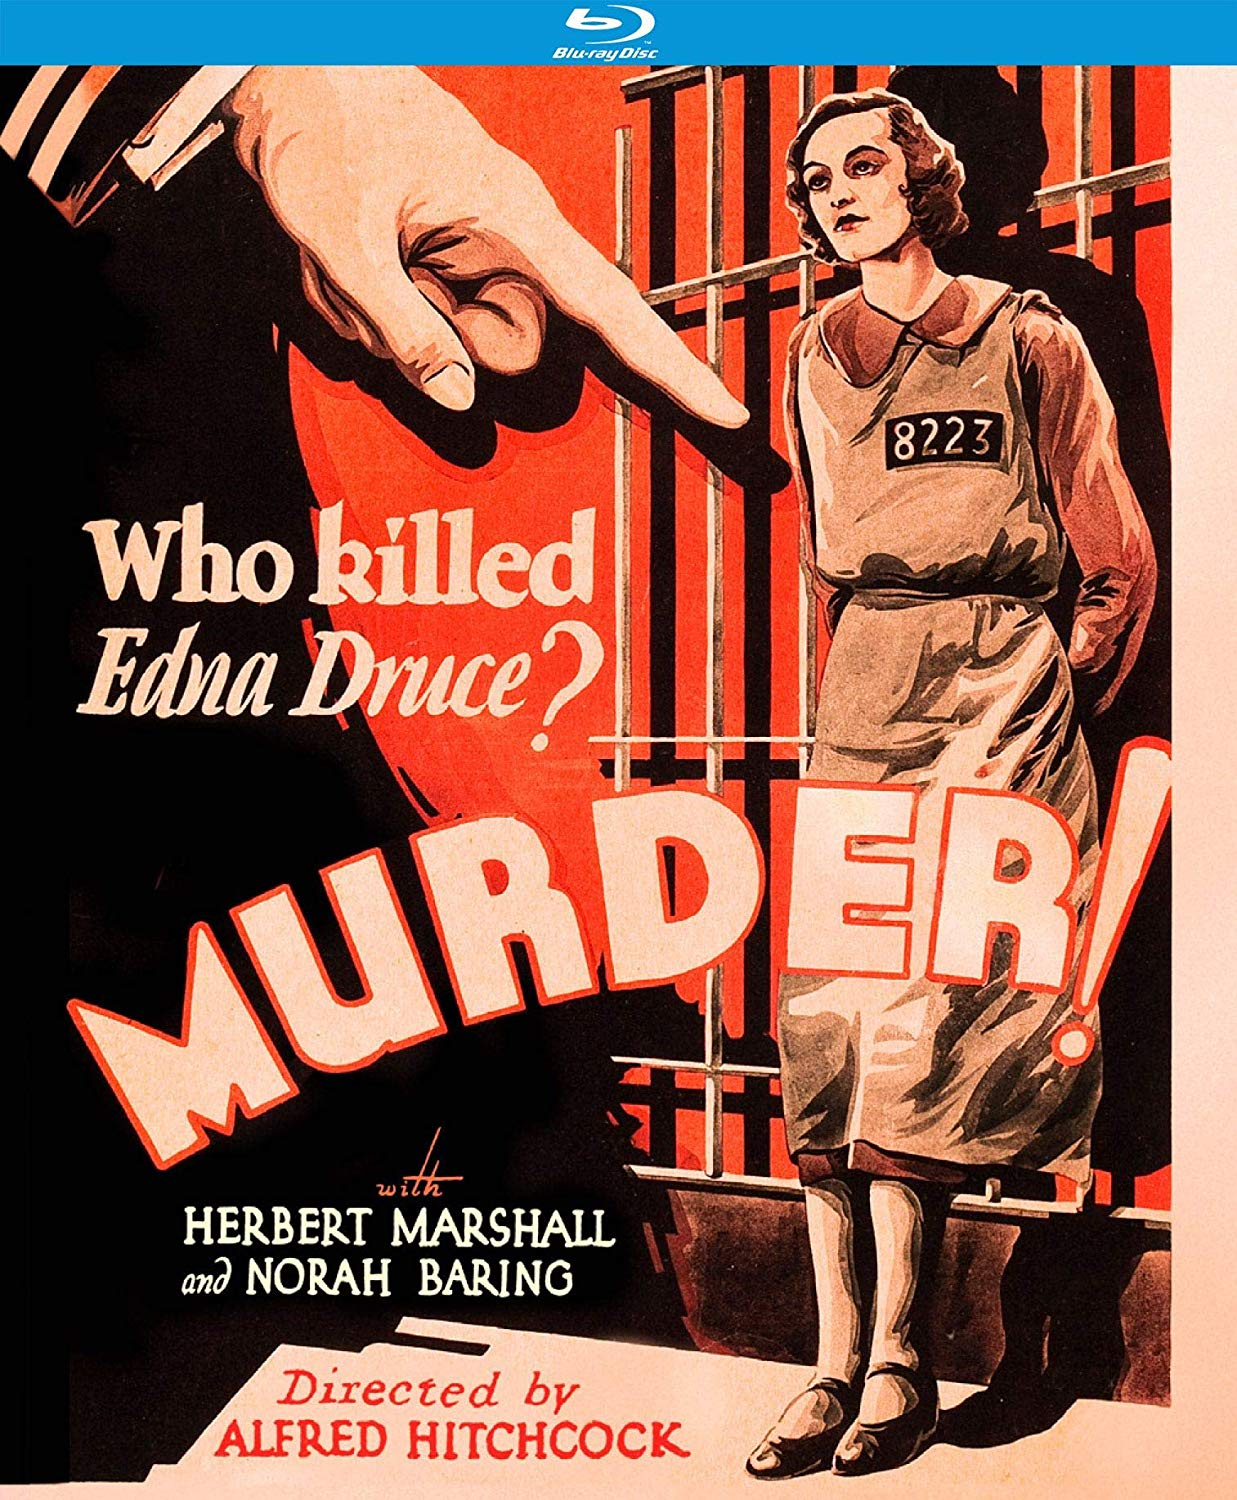 Murder! Blu-ray - Buy at Amazon